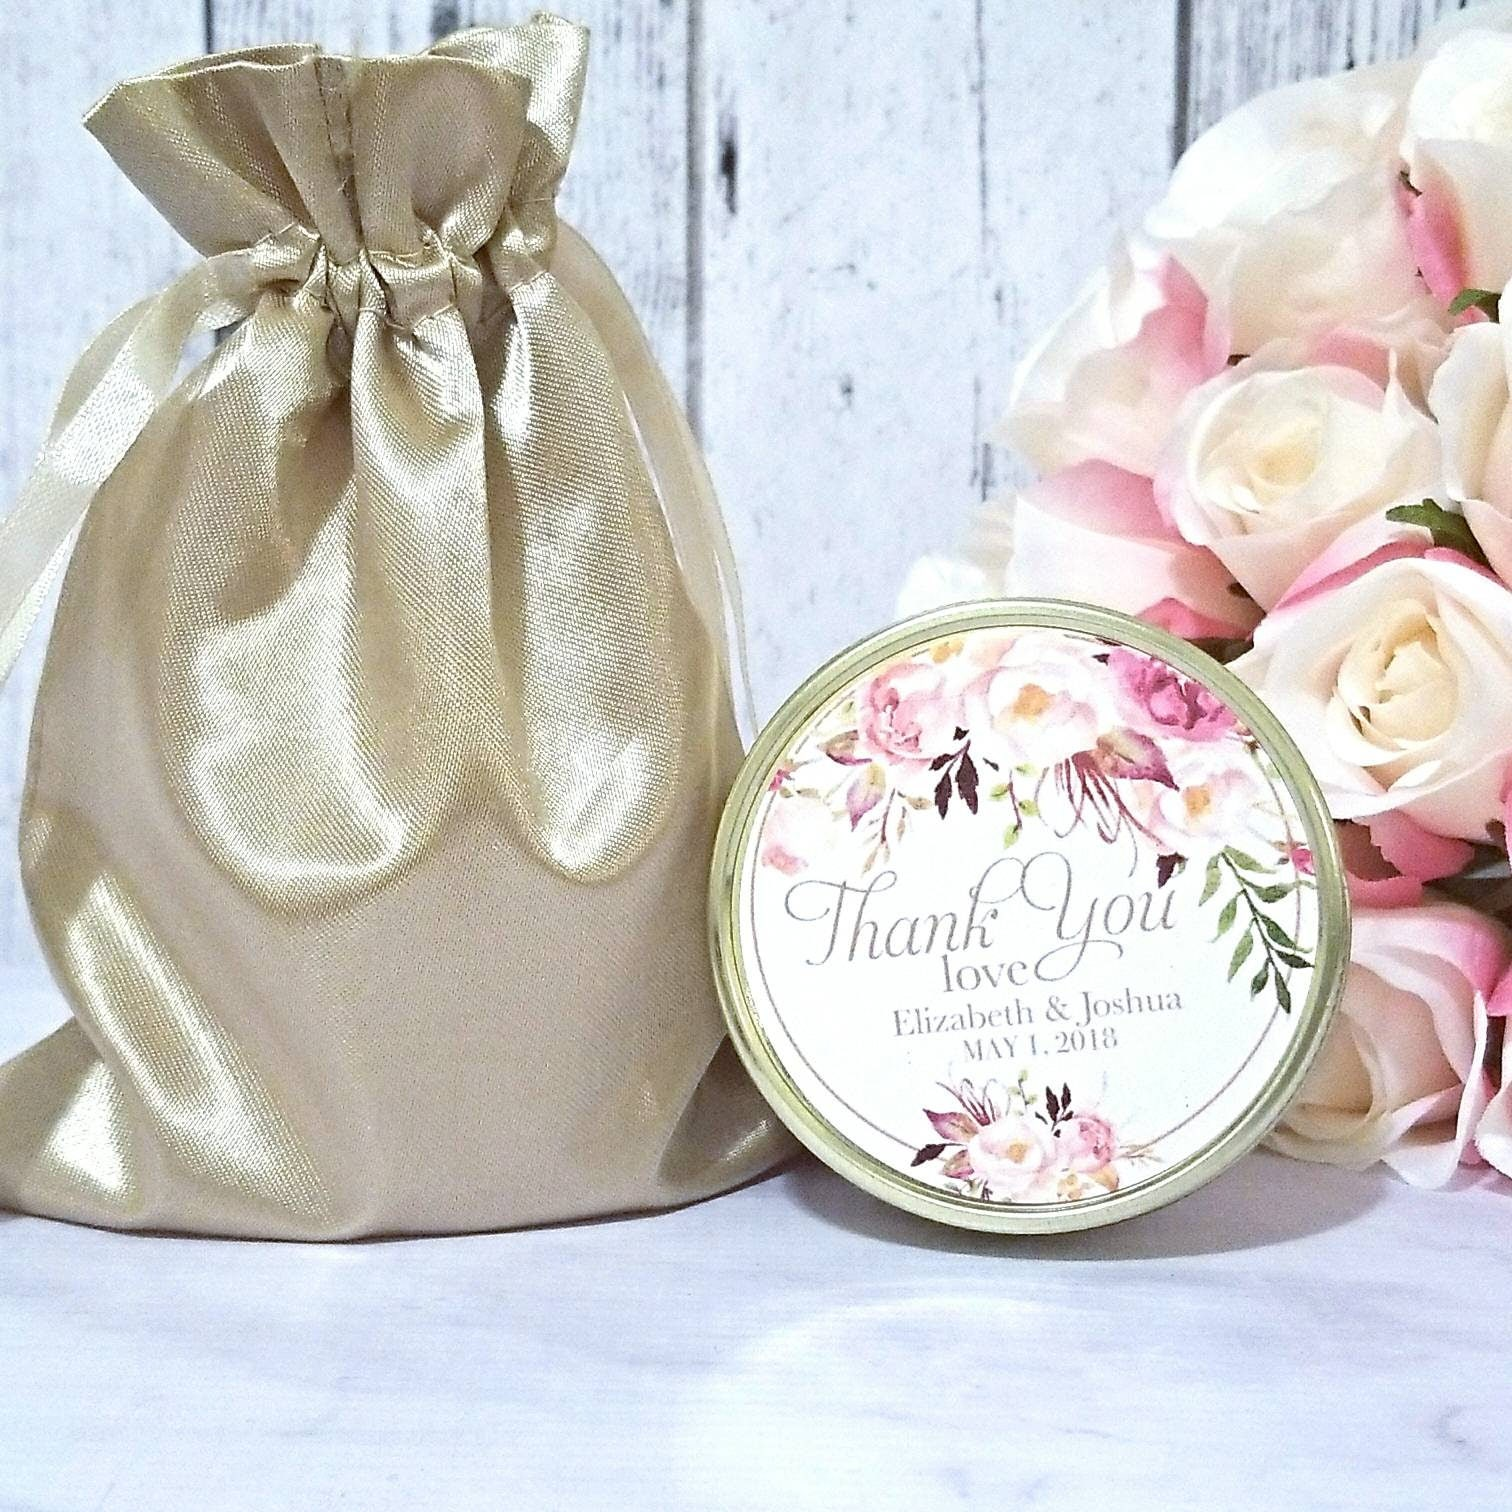 Blush Wedding Favors Candle - Wedding Favors Candles - Blush Wedding ...